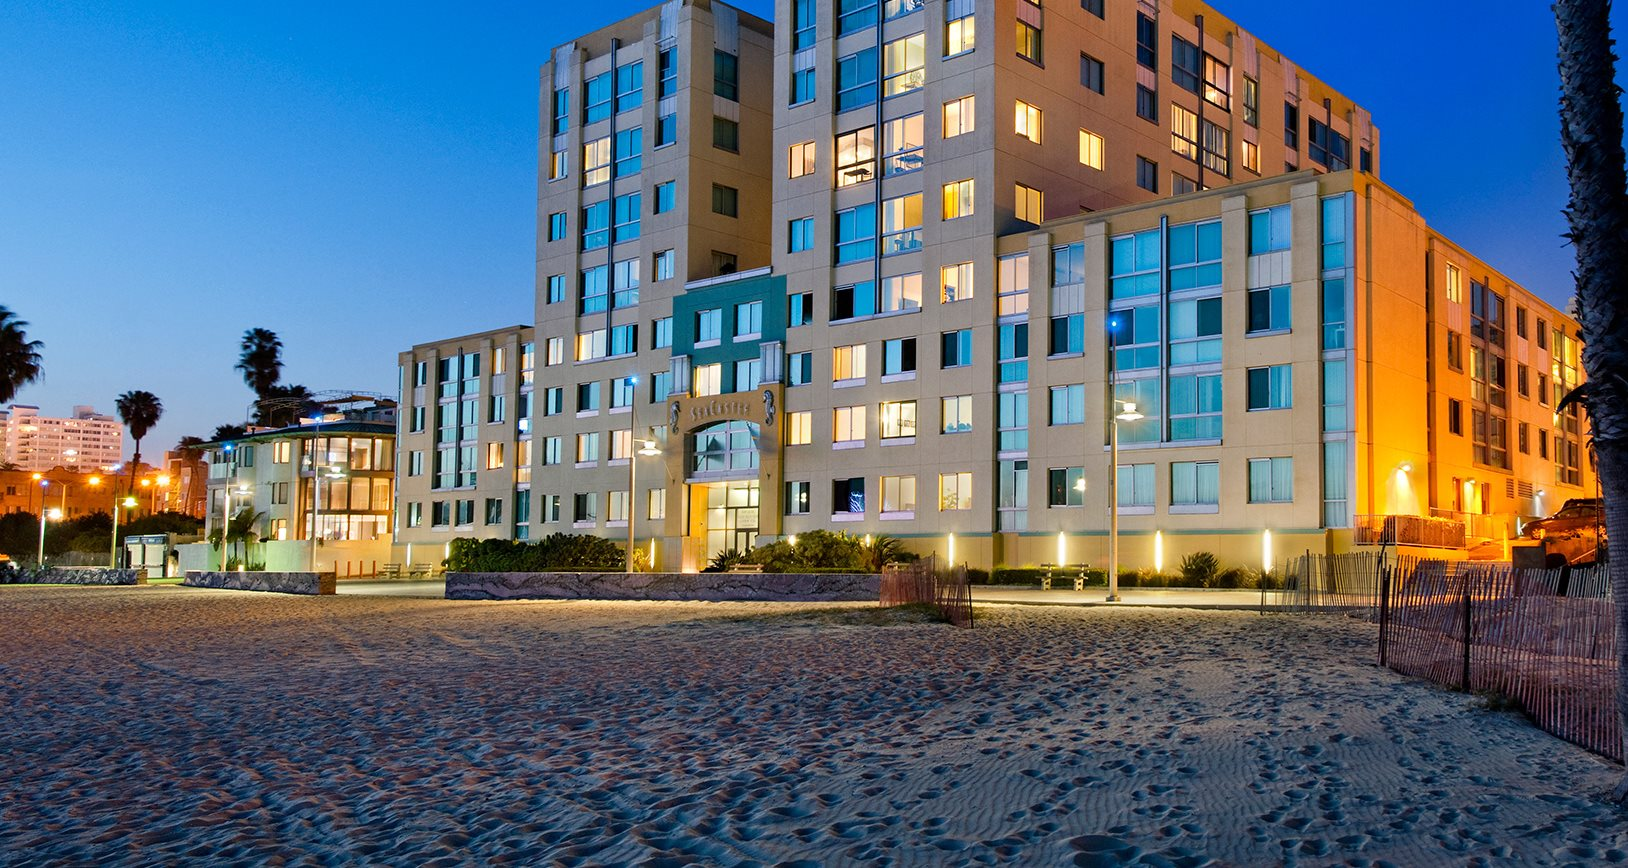 Sea Castle, Santa Monica, is a Resort Style Community